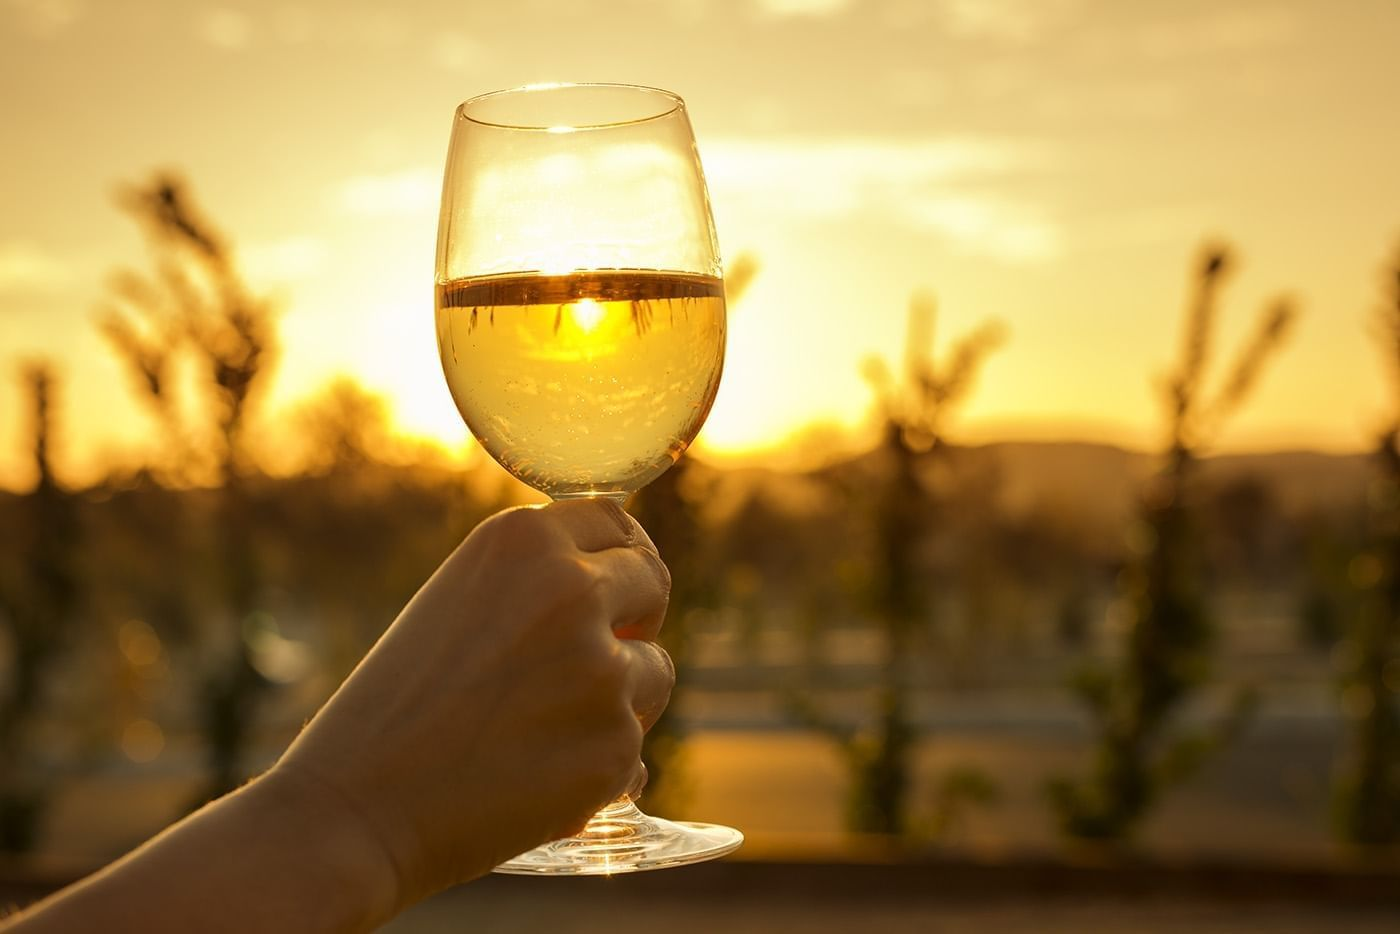 Wine glass held up with the sun setting in the distance